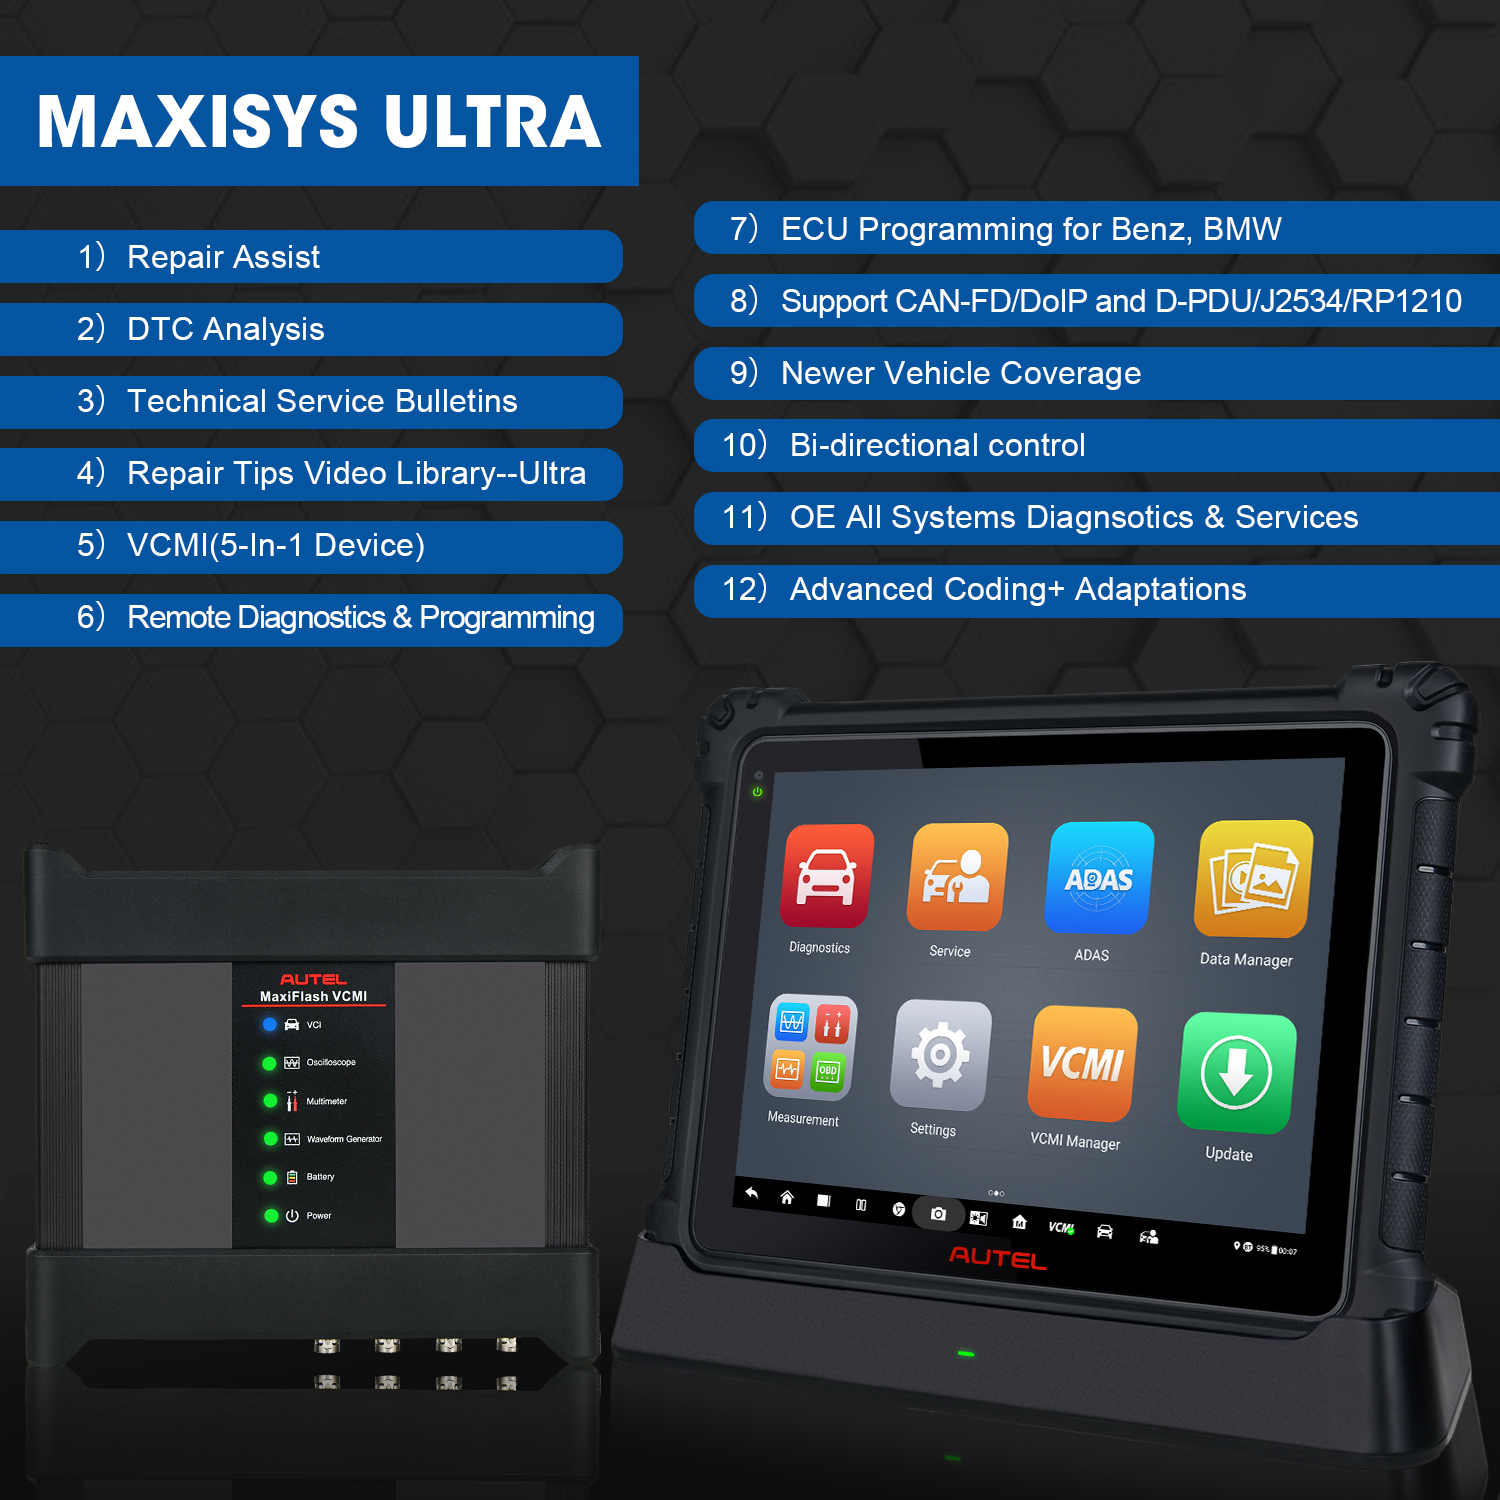 Autel Usa Maxisys Ultra Diagnostic Tablet Ms 919 Car Diagnostic Scanner  Tool Ecu Programmer With Advanced Vcmi - Buy Autel Maxisys Ultra,Autel Usa  Maxisys Ultra Diagnostic Tablet,Autel Ultra Product on Alibaba.com